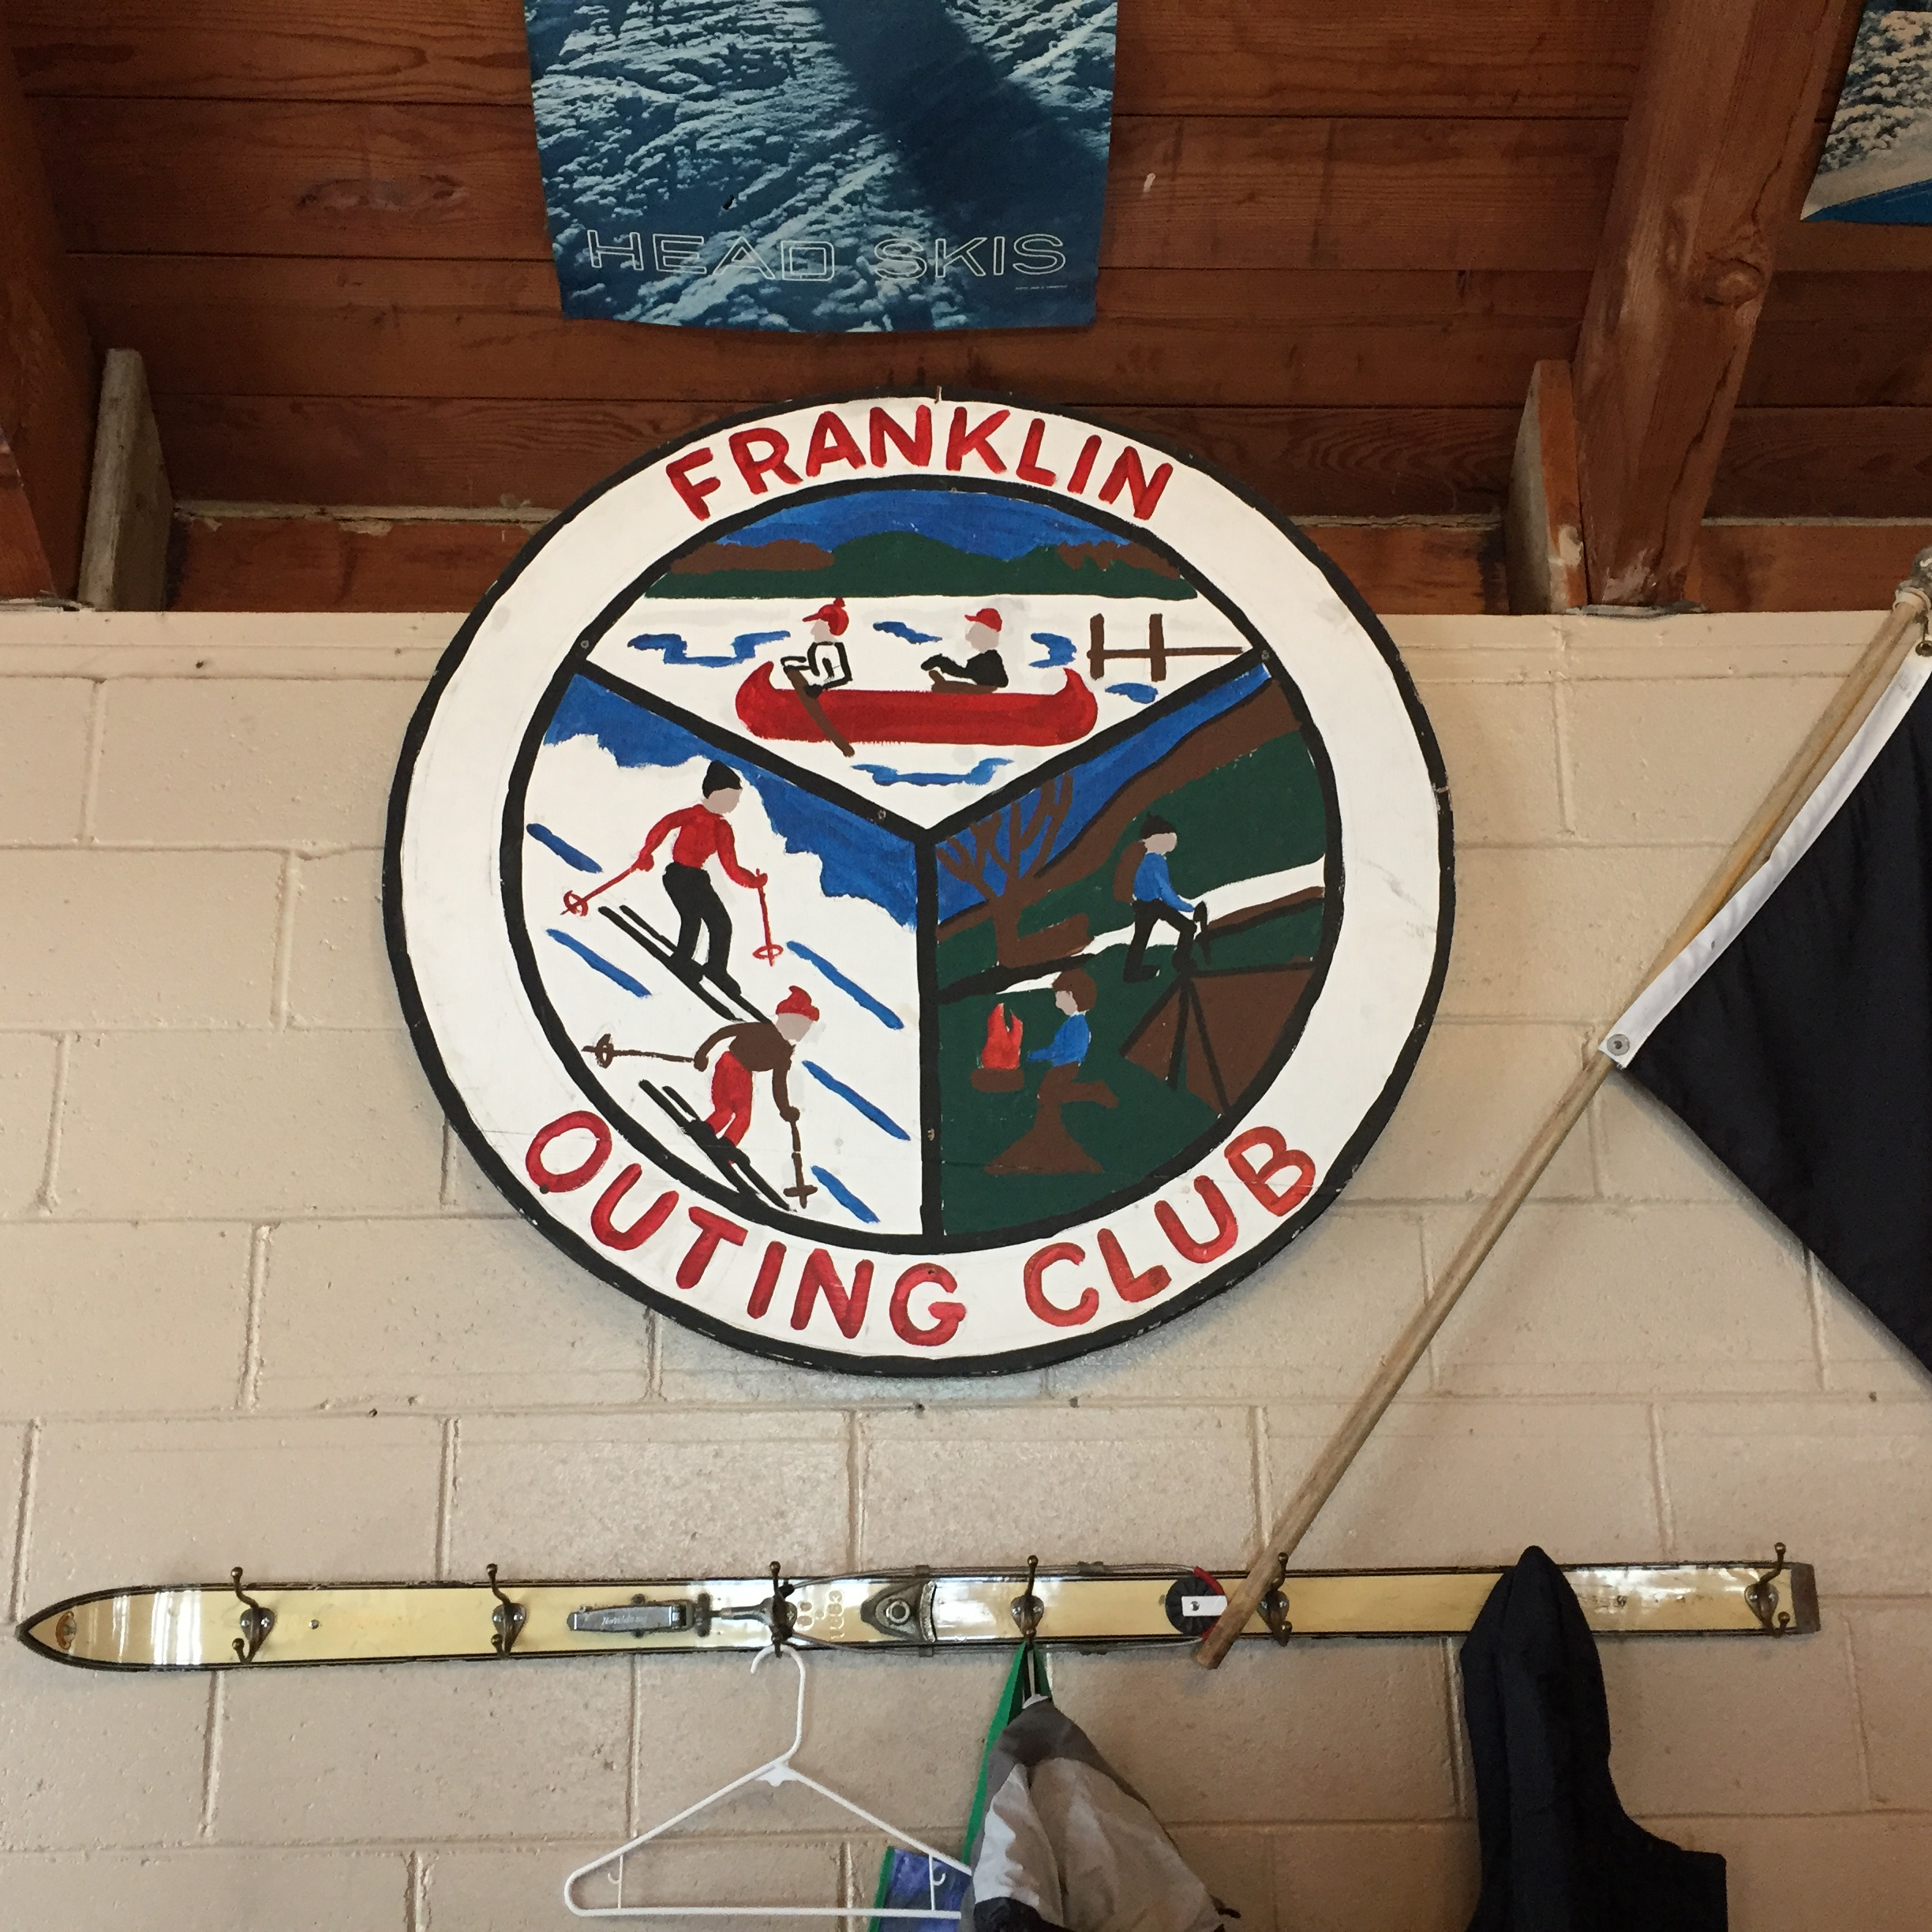 franklin outing club.JPG